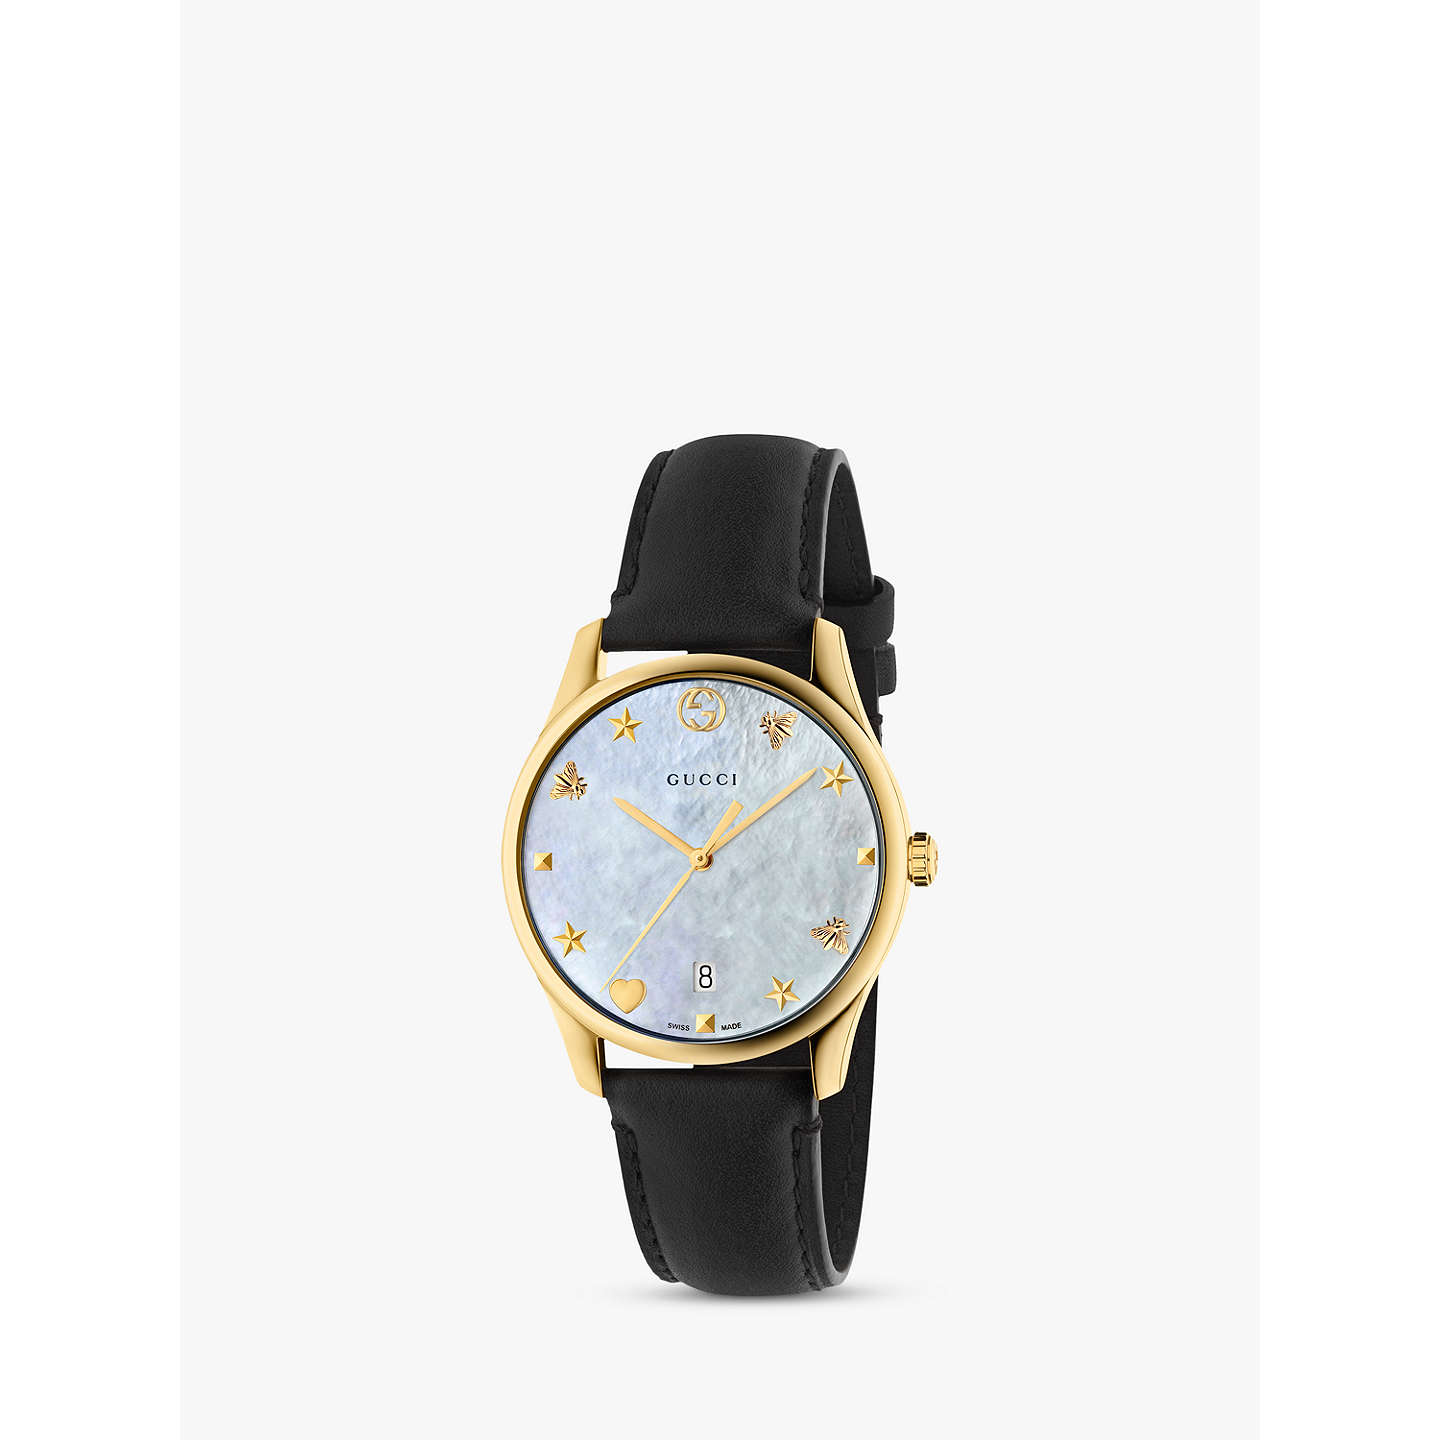 century gold rg modern grant watches unisex by style elegant products rose mid watch tokyobay